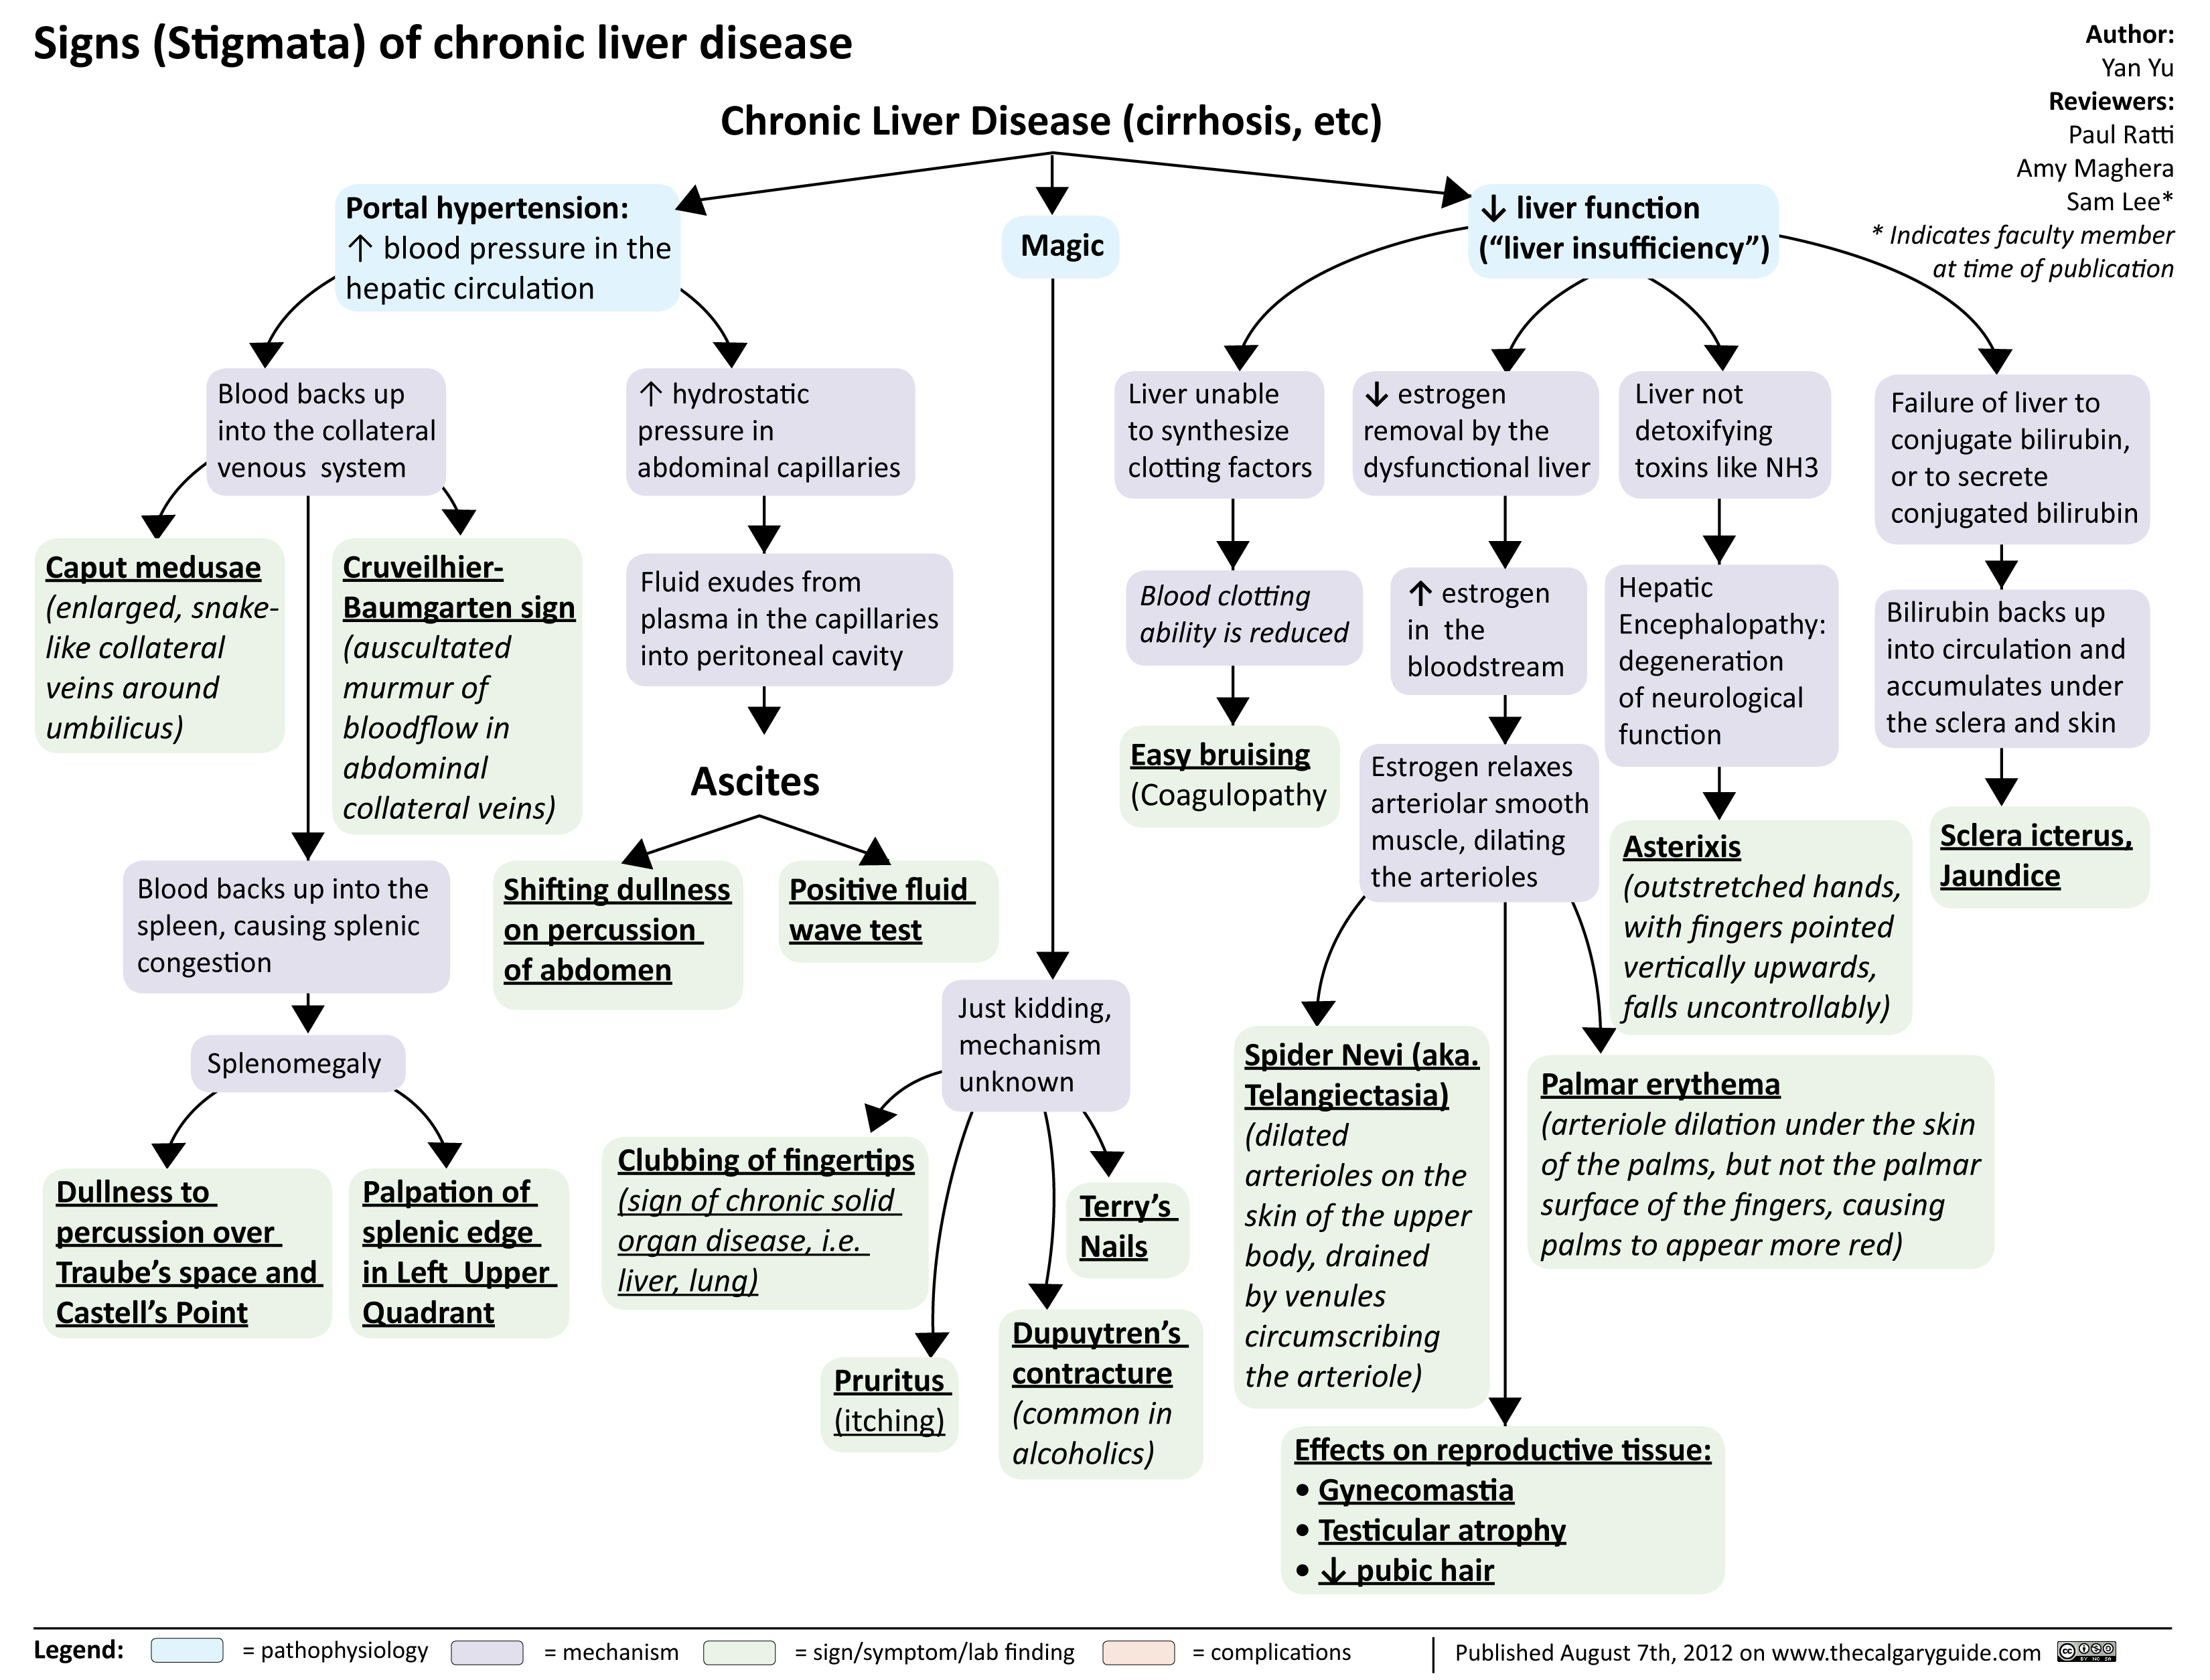 signs of chronic liver disease